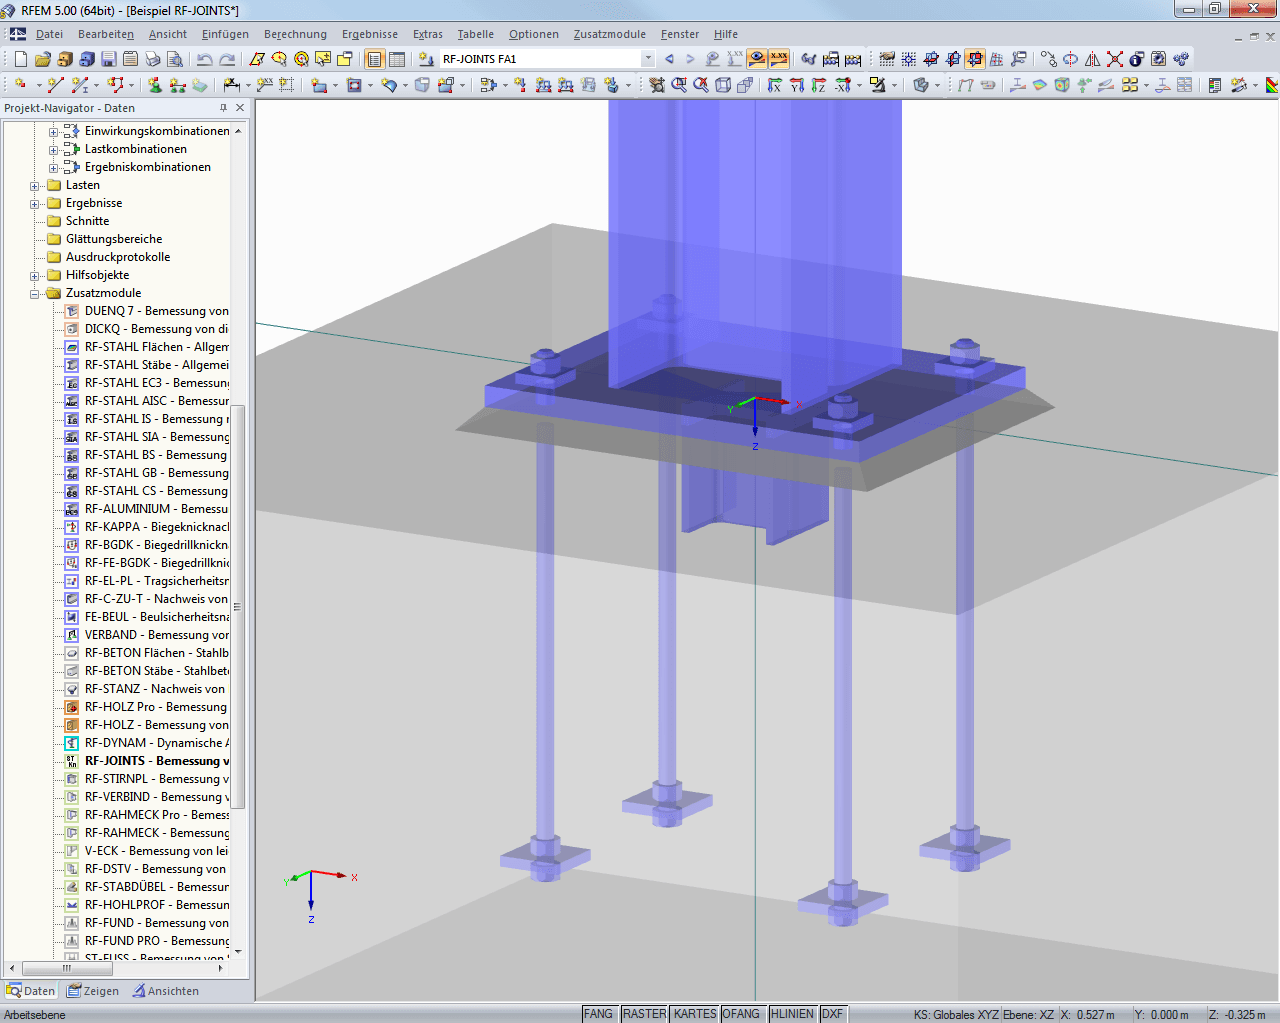 RF-JOINTS Steel - Column Base: Visualização de sapata no RFEM